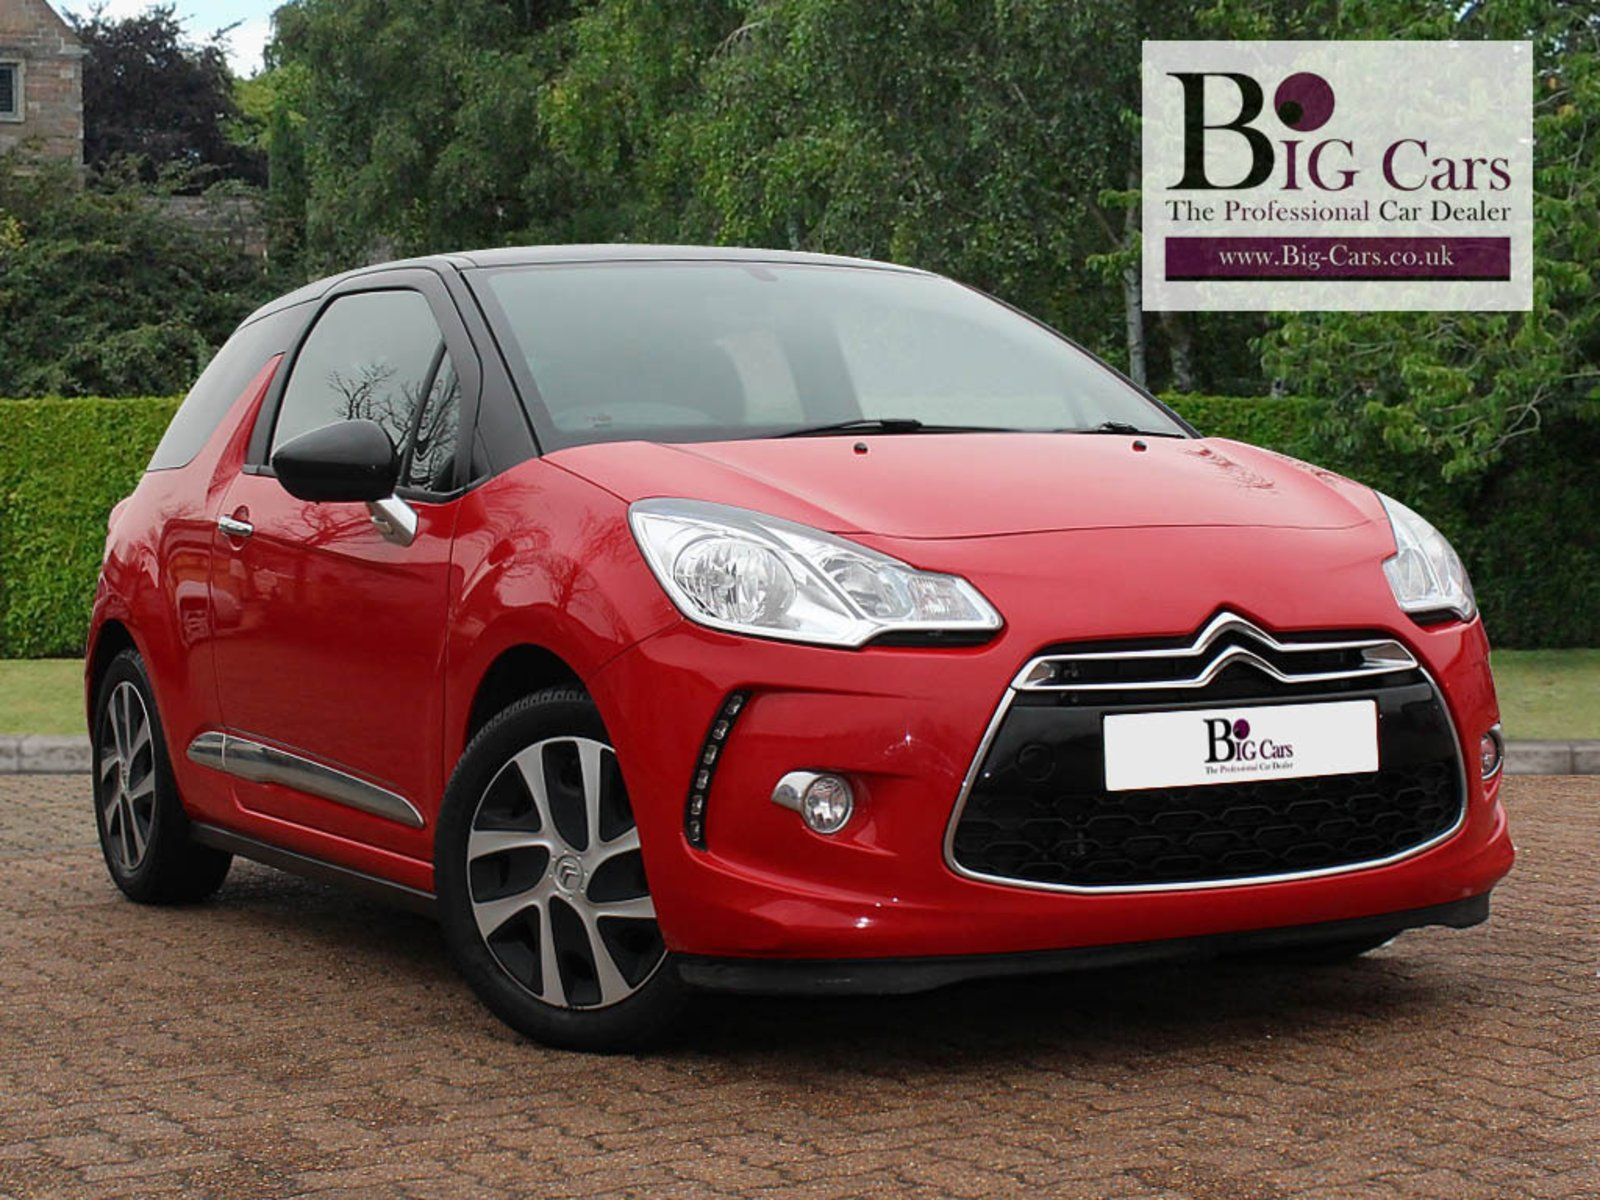 Citroen Ds3 Used Car Reviews 2018 Wiring Diagram Dstyle E Hdi Http Www Cars Co Uk 6285115